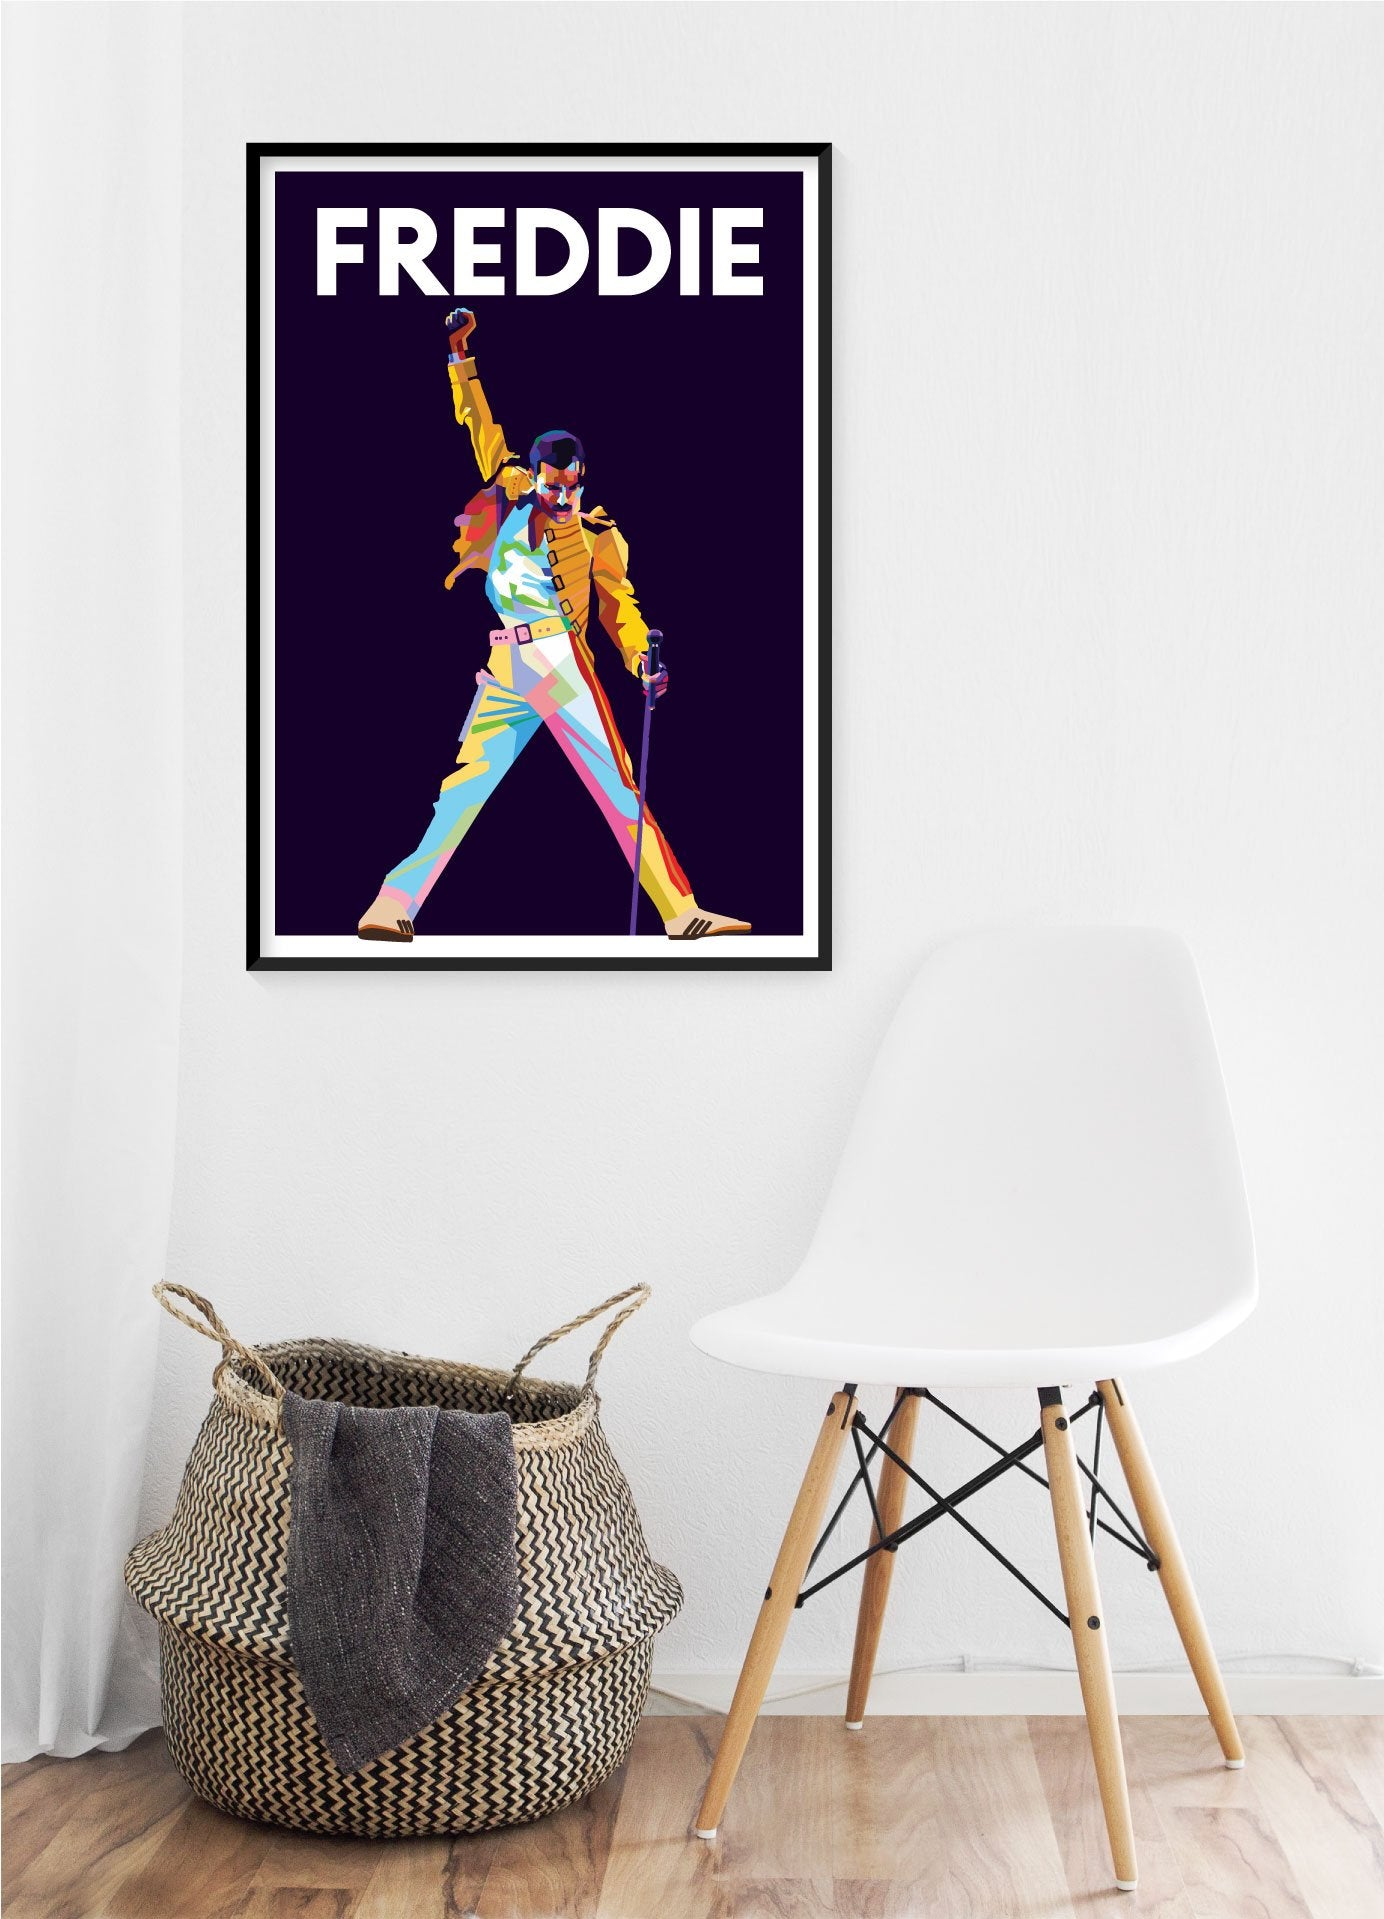 Freddie Mercury Poster A3  A4 Size Music Illustrations With Hardboard In Plastic Bag